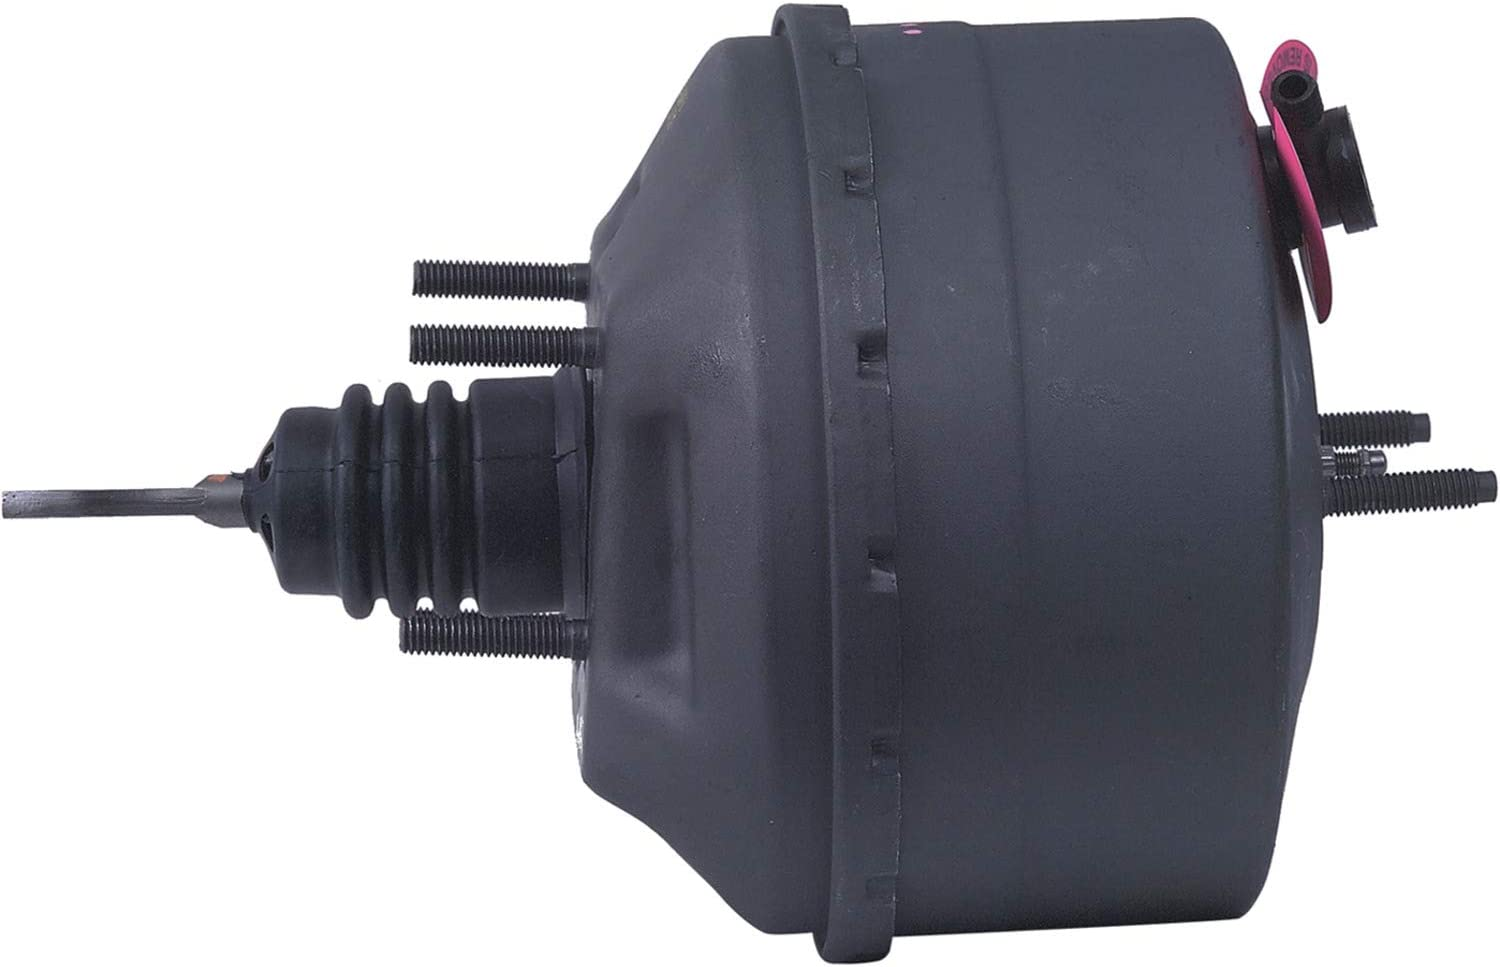 Cardone 54-73155 Remanufactured Vacuum Miami Mall Booster Brake online shopping witho Power